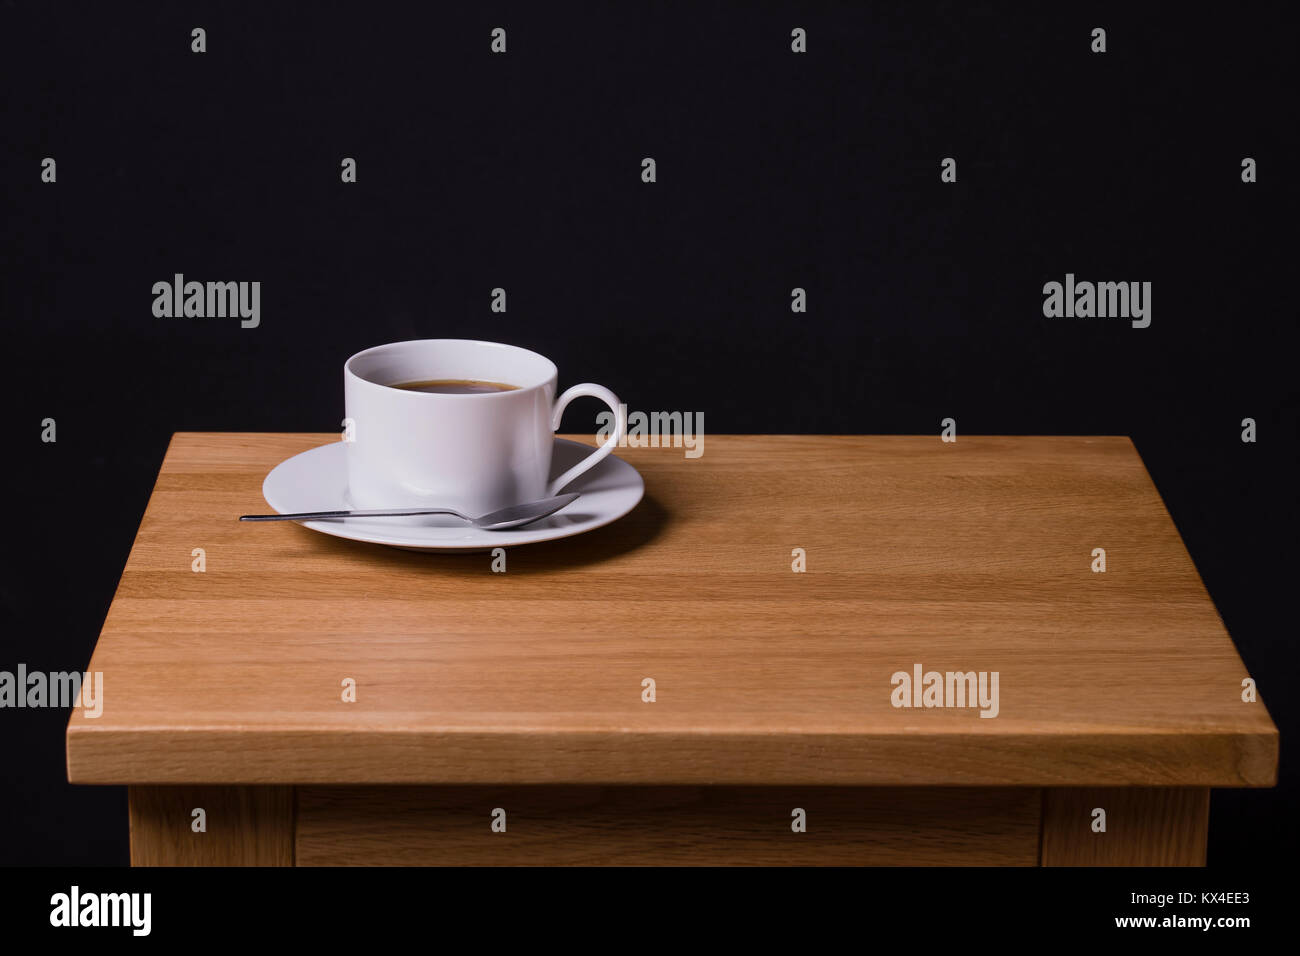 An image of a cup of black coffee sitting on an oak coffee table - Stock Image